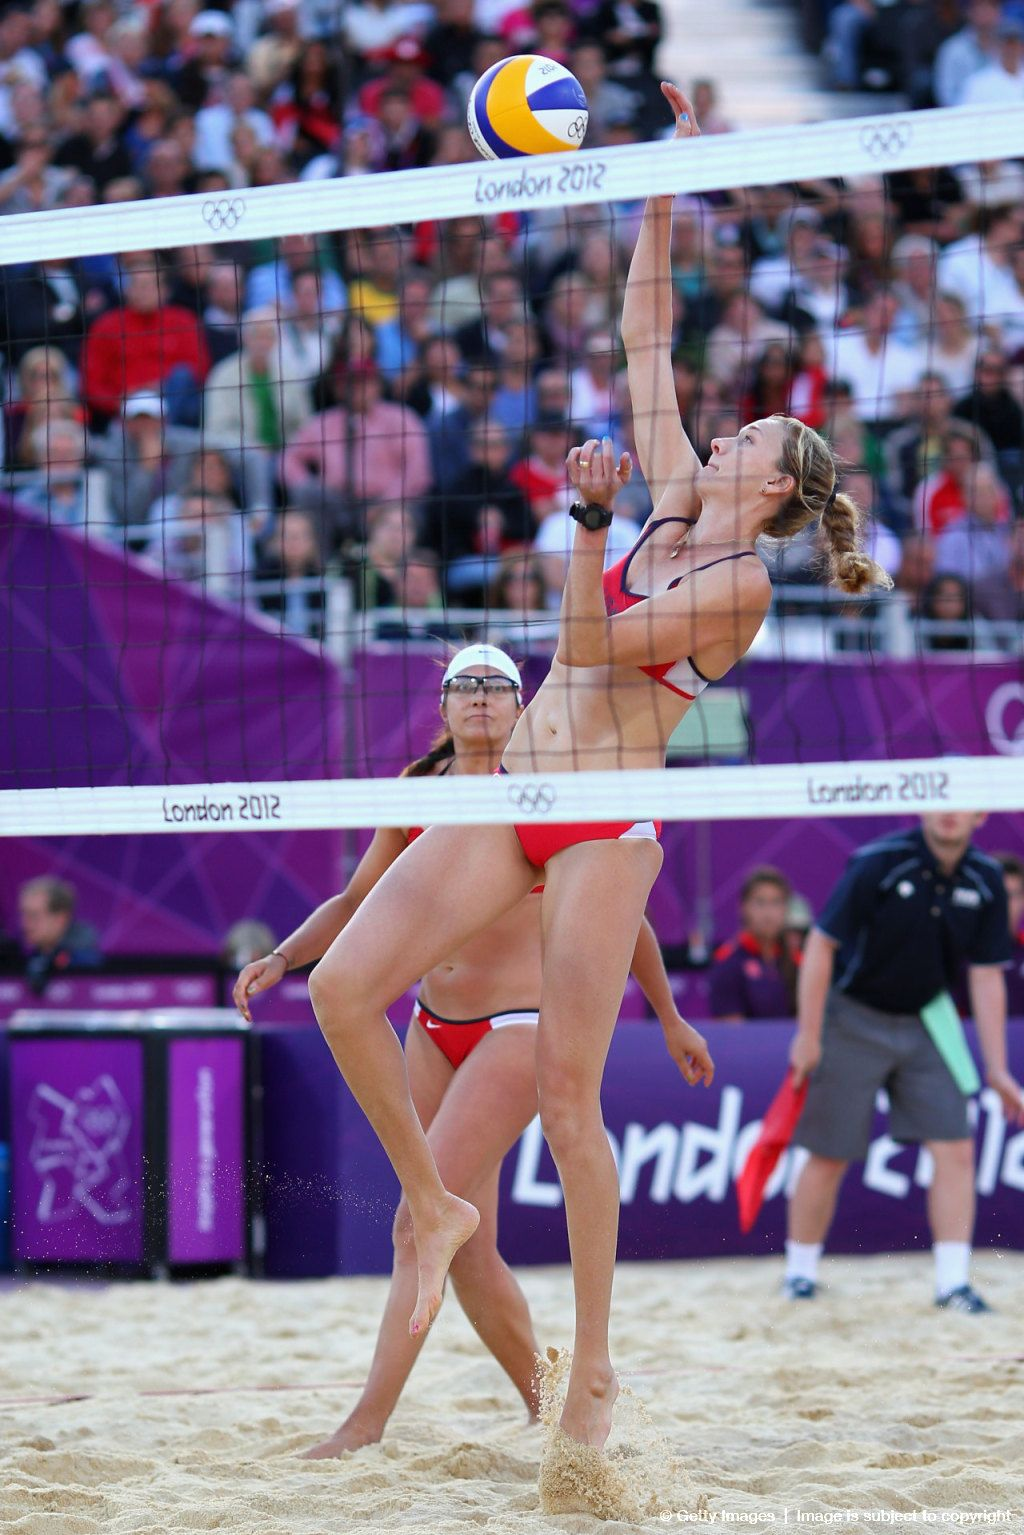 Image Detail For Kerri Walsh Jennings R And Misty May Treanor Of The U S Celebrate A Point Against Italy S G Misty May Treanor Beach Volleyball Kerri Walsh